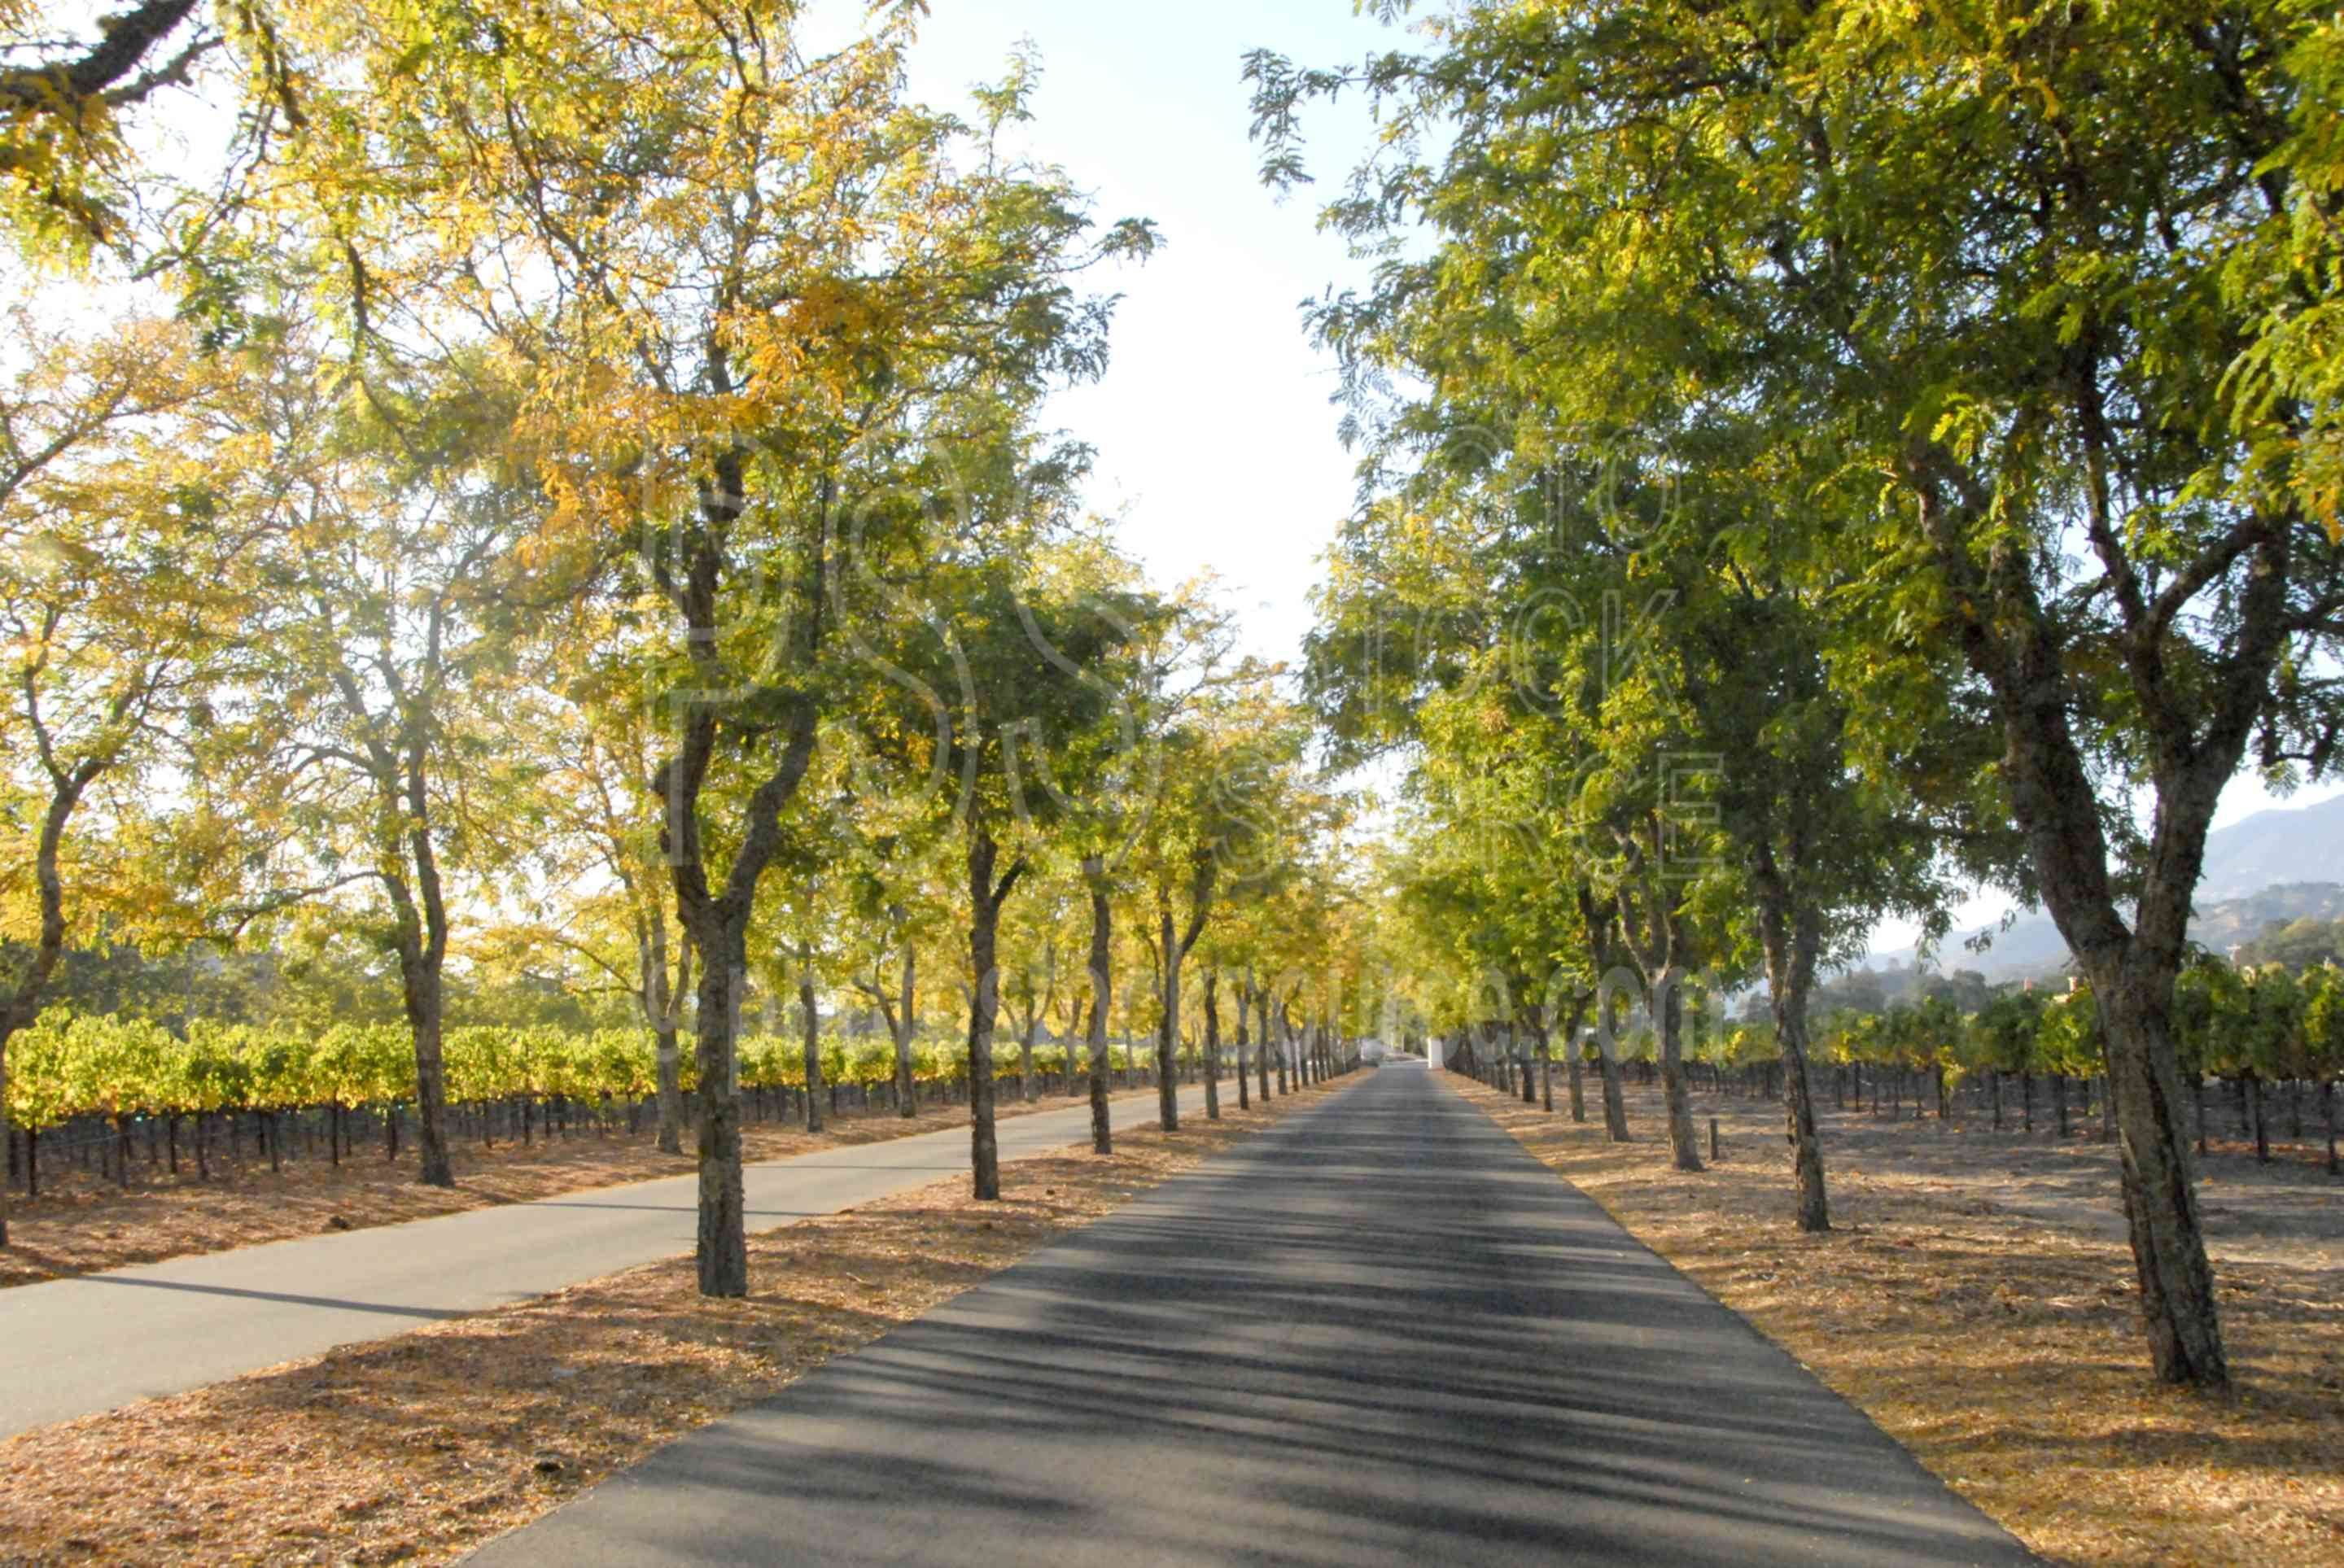 Sterling Vineyard Entrance,winery,vineyard,napa valley,lane,road